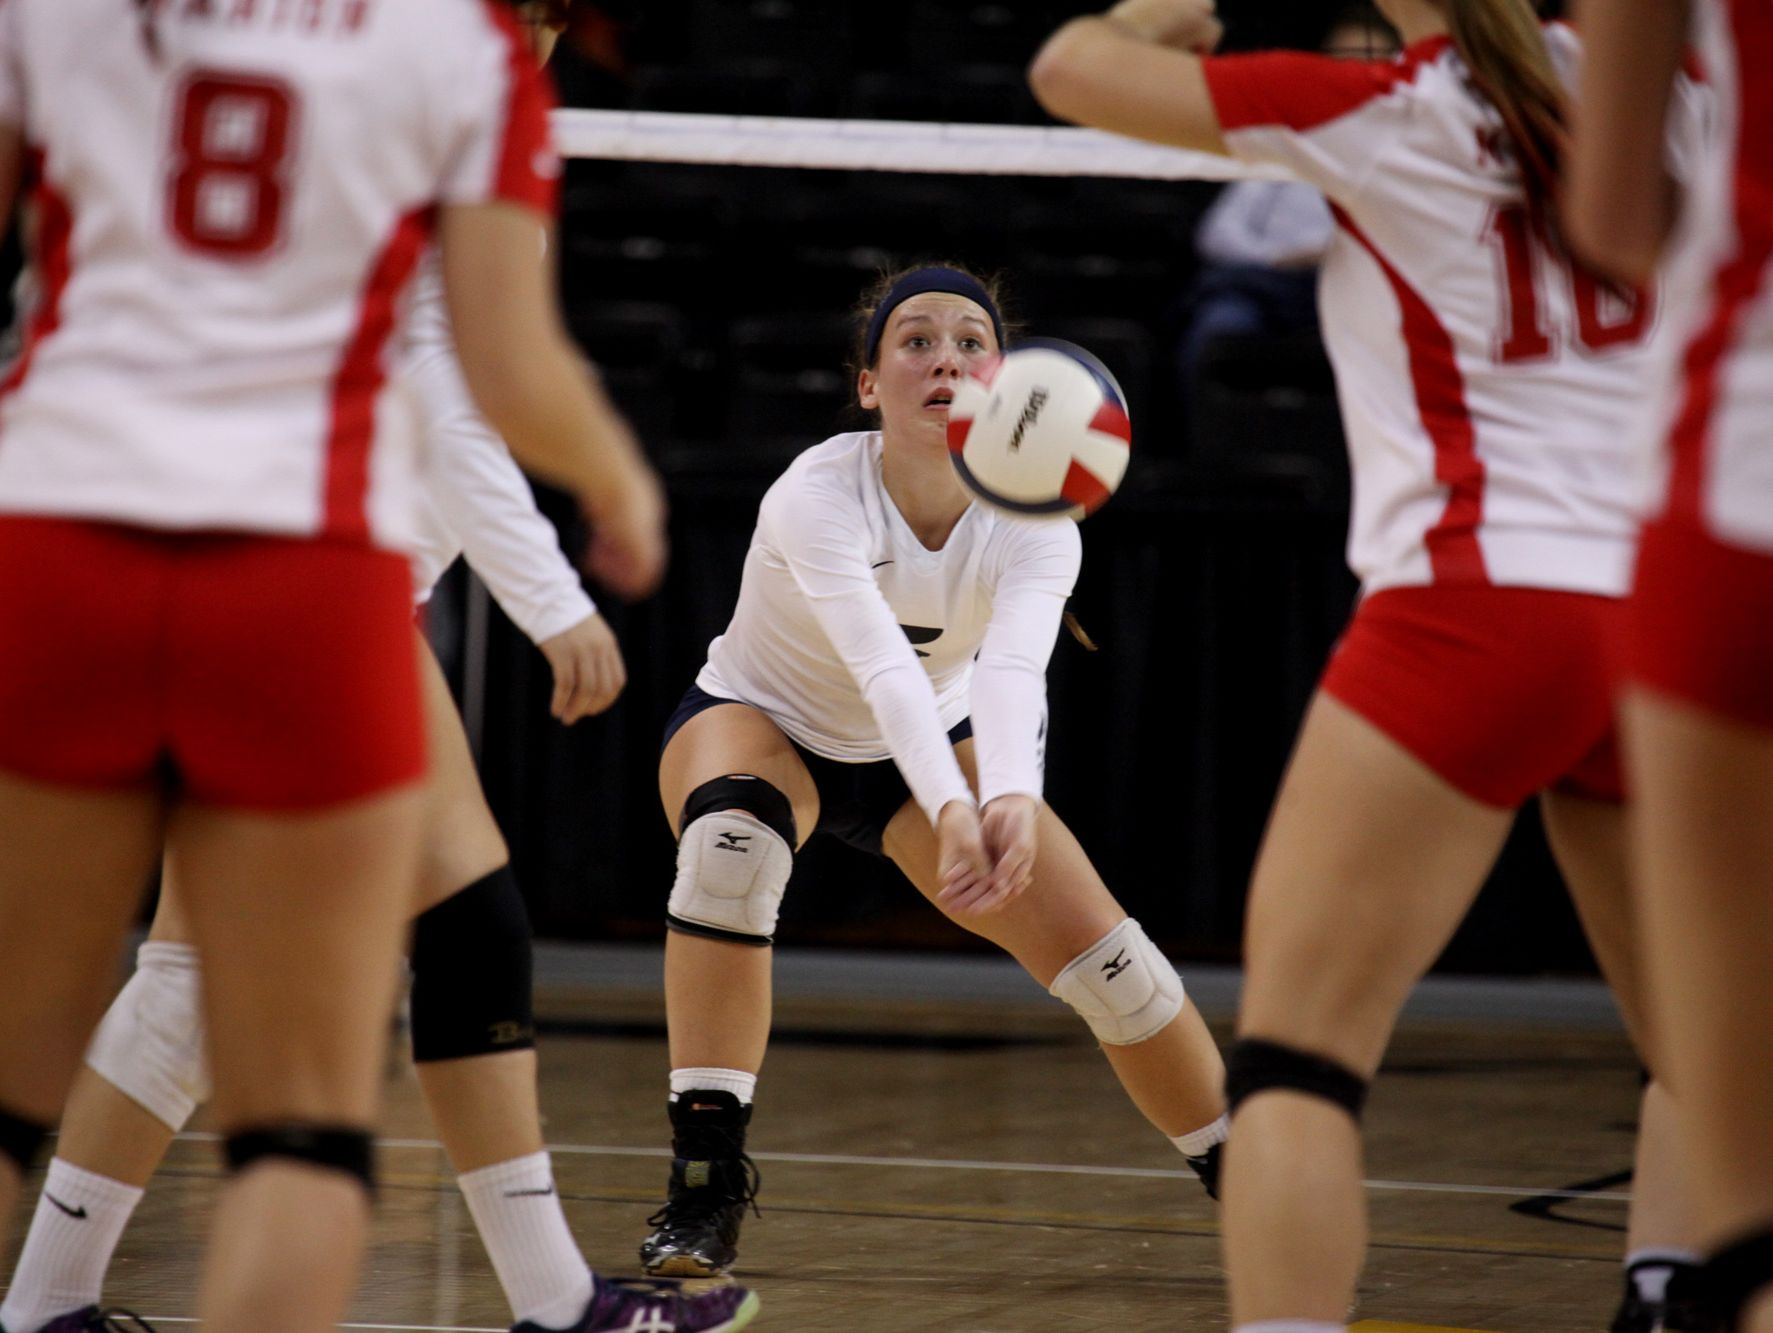 Lee's Meghan Wood bumps the ball during the Virginia High School League 2A Girls Volleyball State Championship held at the Virginia Commonwealth University's Stuart C. Siegel Center in Richmond on Saturday November 19, 2016.